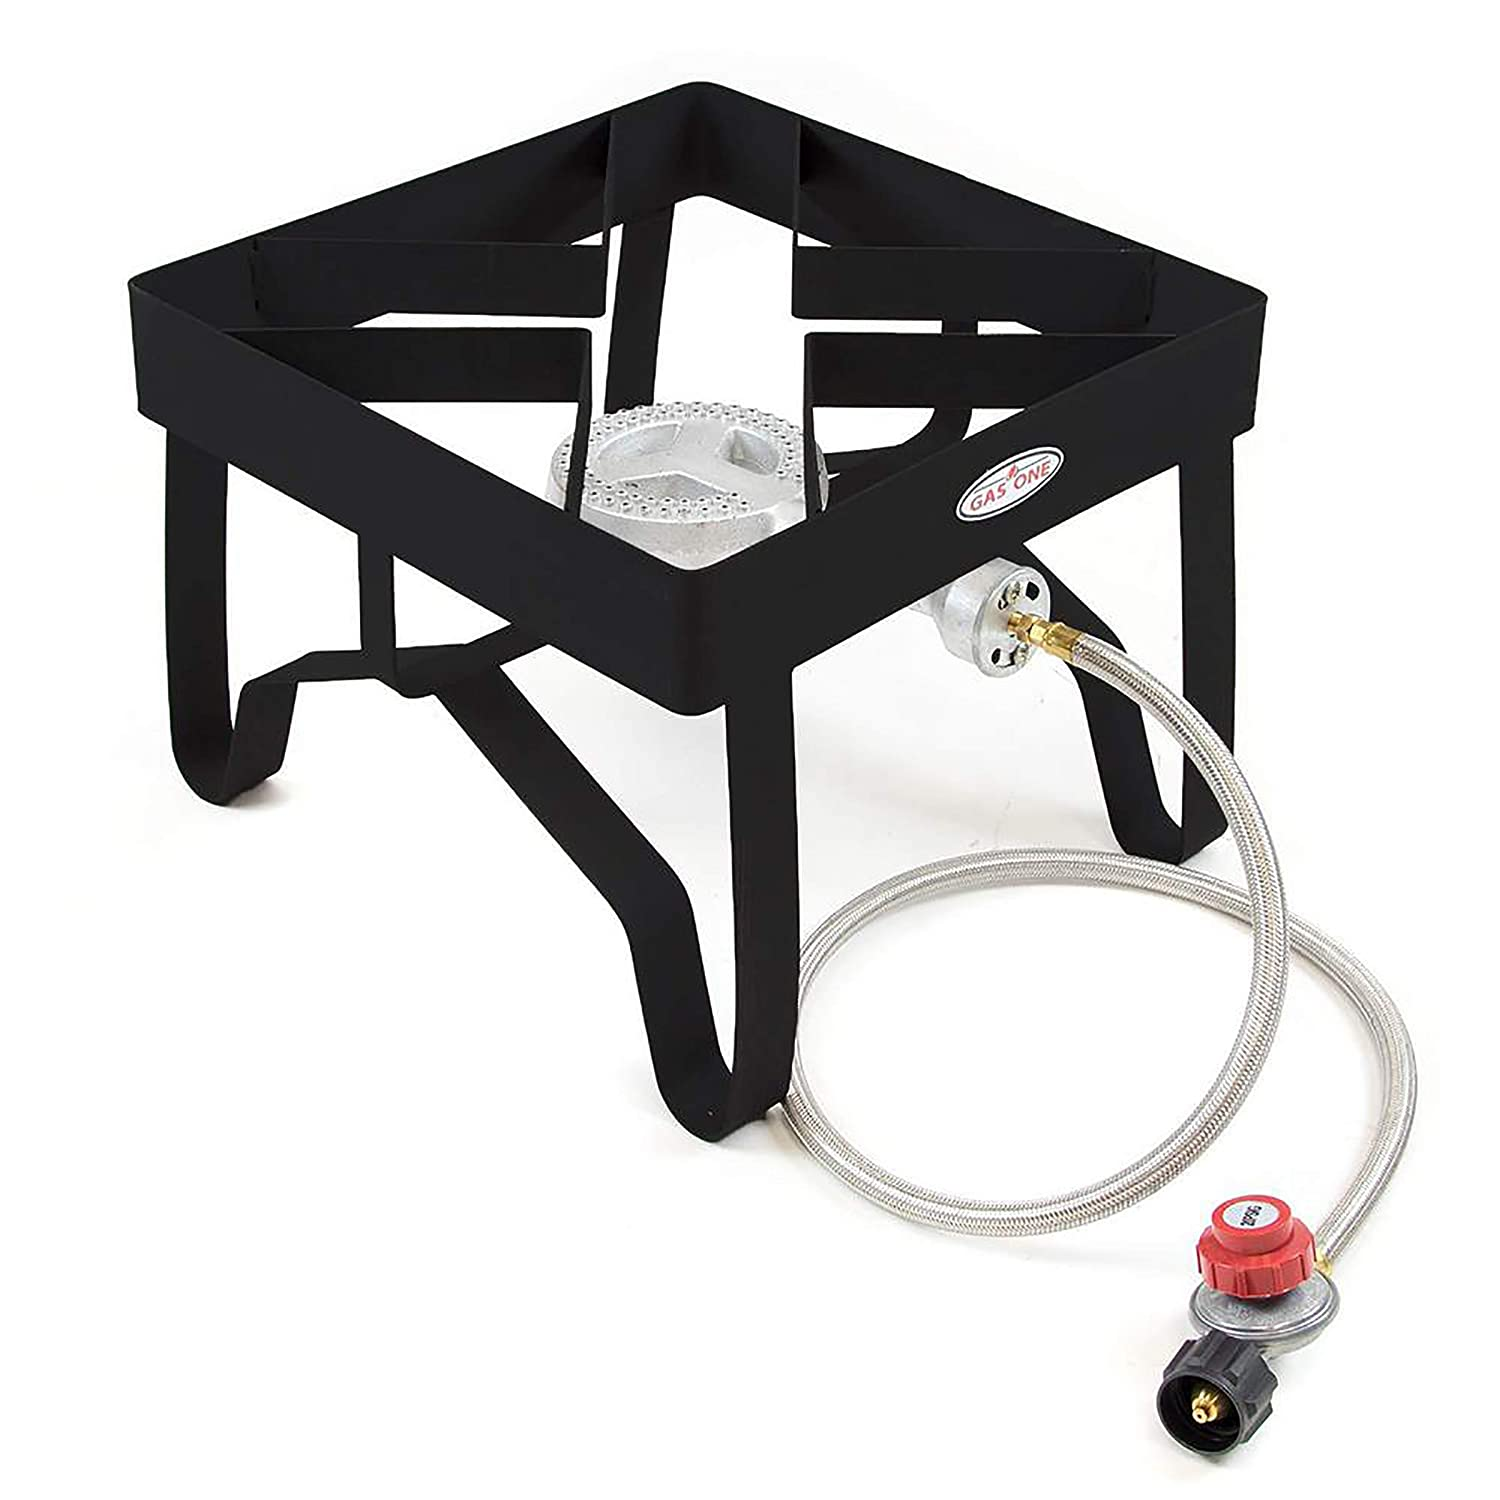 GAS ONE High-Pressure Single Burner Outdoor Stove Propane Gas Cooker with Adjustable 0-20PSI Regulator and Hose Perfect for Beer Brewing, outdoor cooking, Maple Syrup Prep